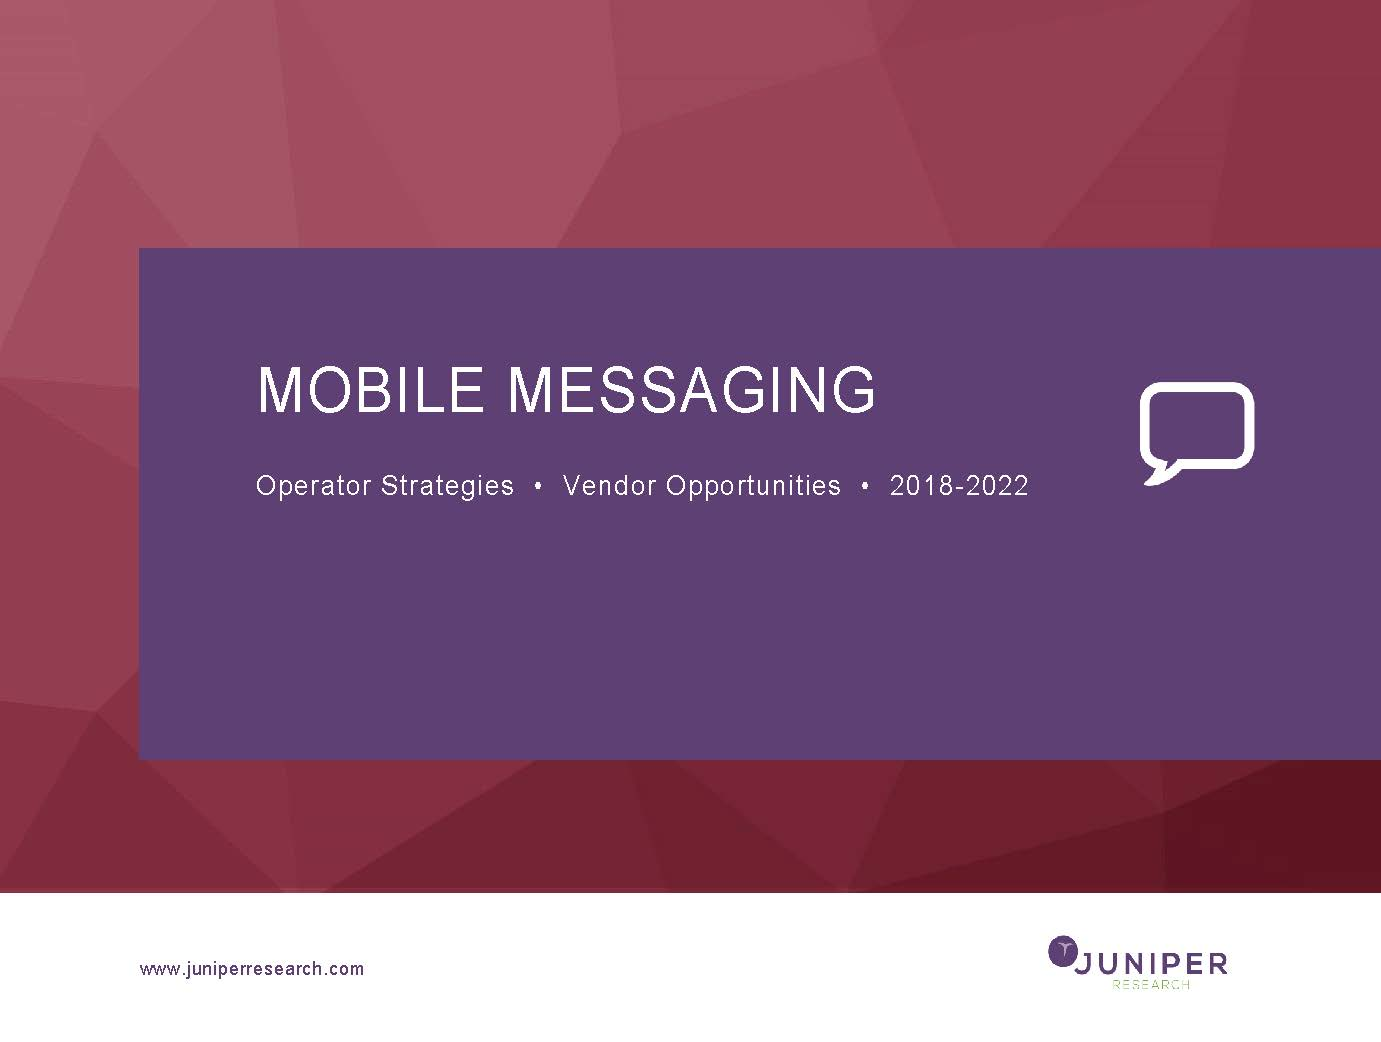 Mobile Messaging - Executive Summary 2018-2022